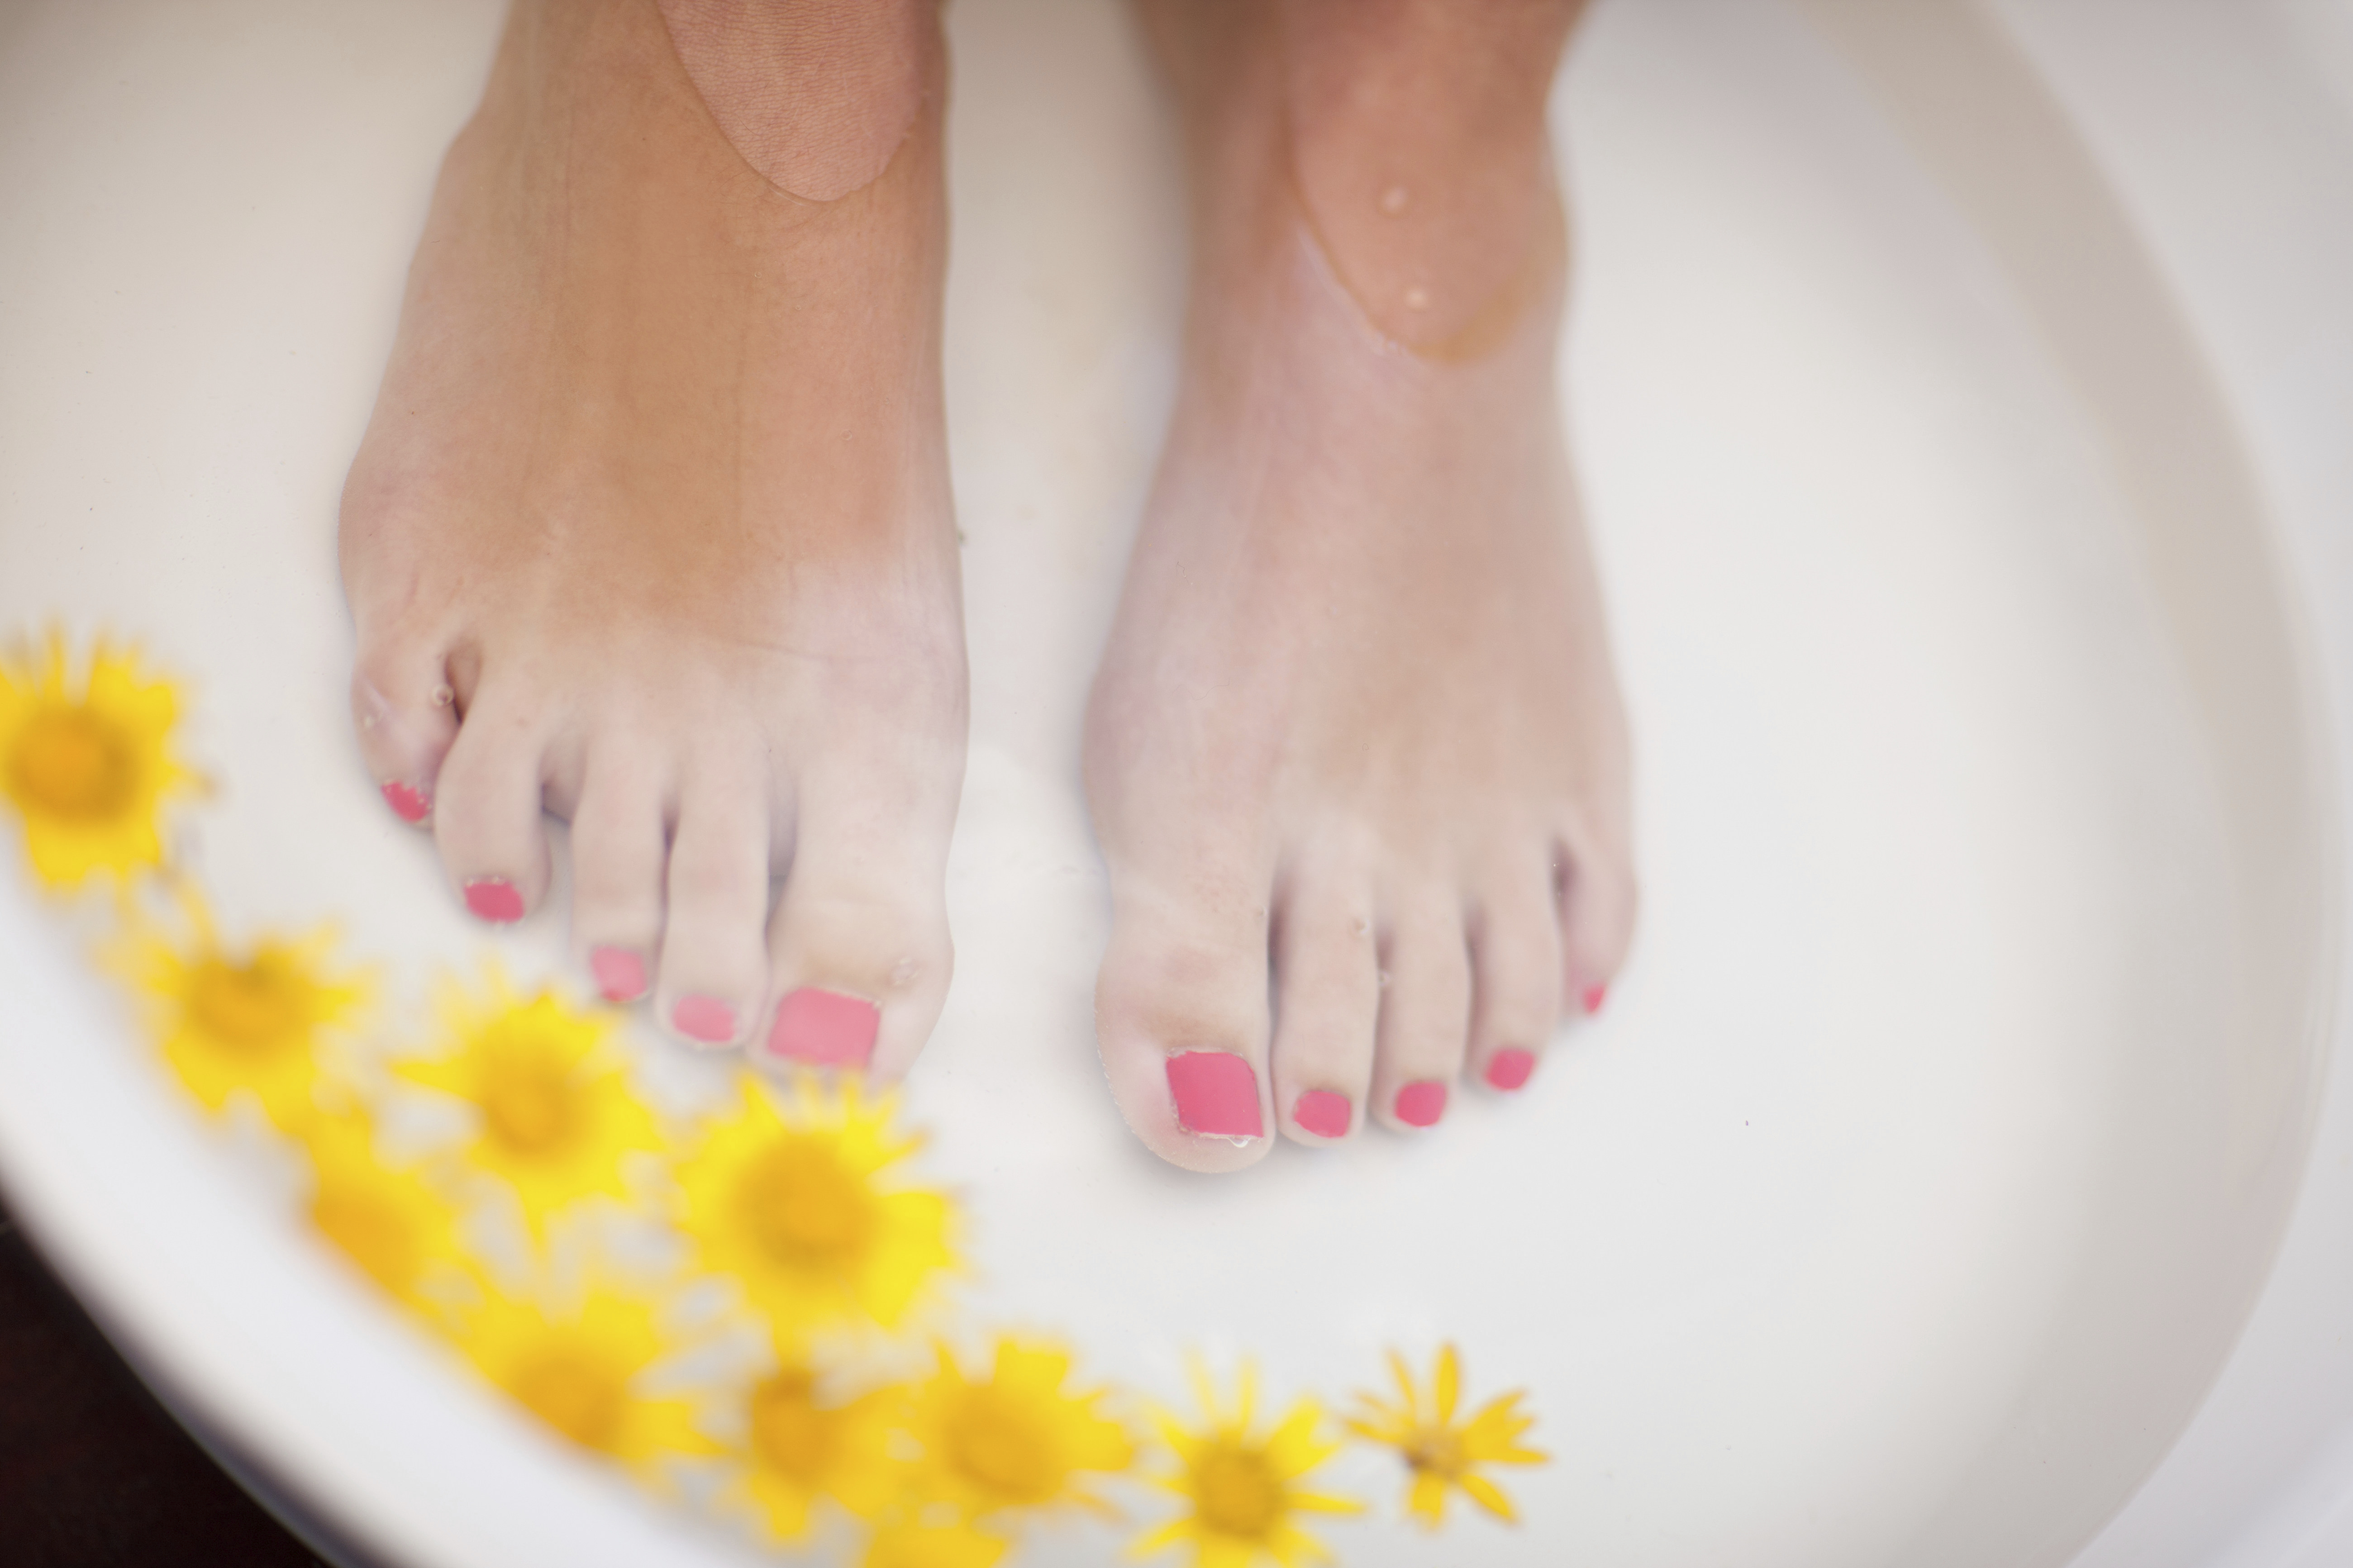 How to make a pedicure yourself